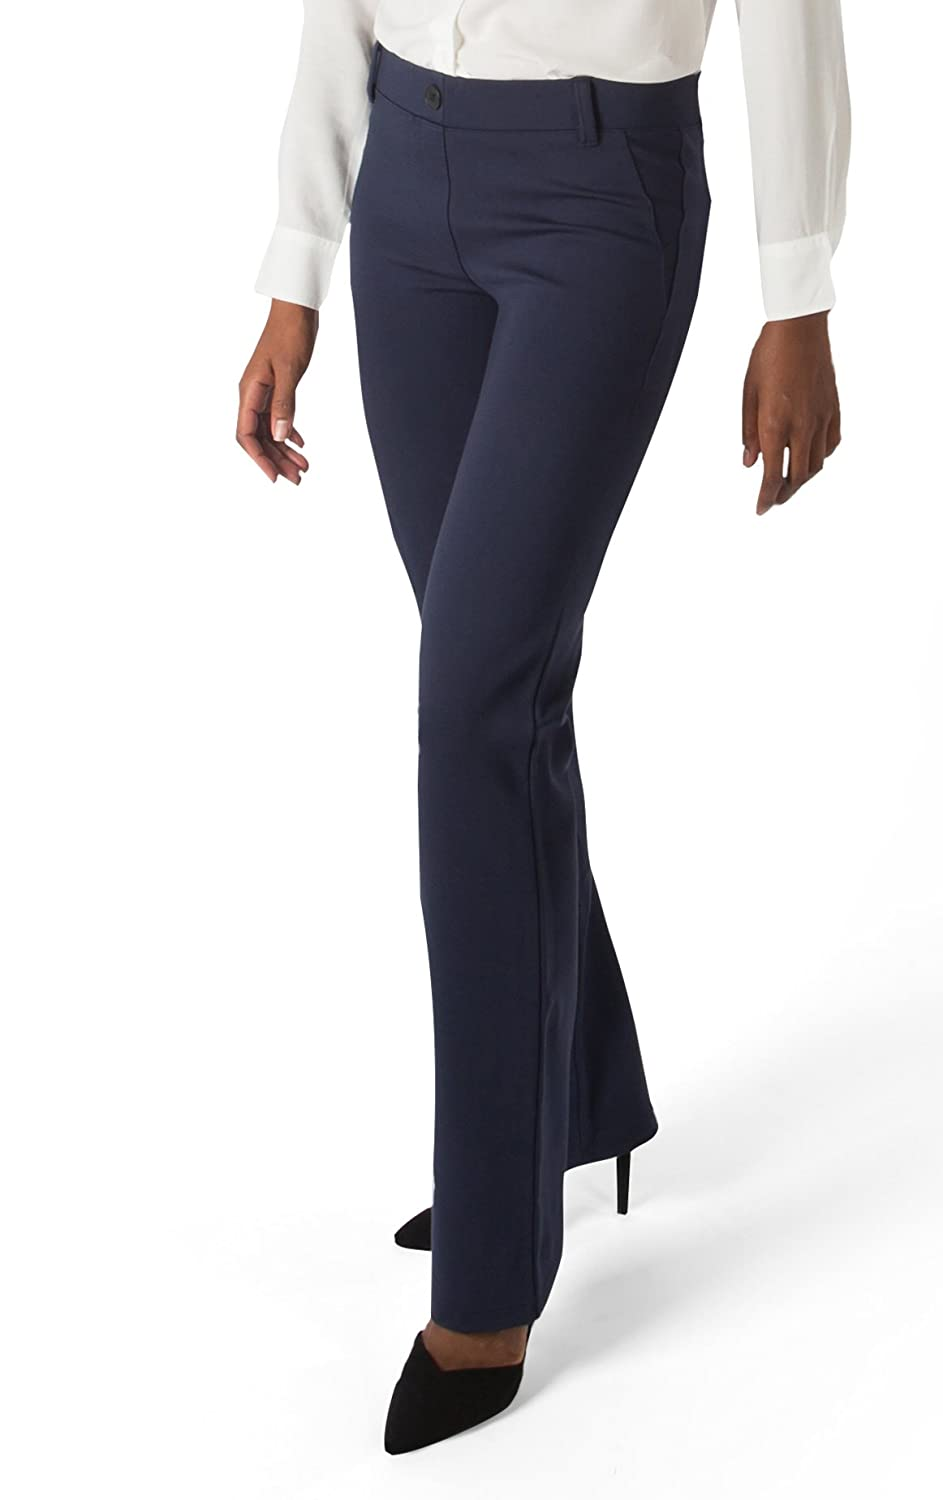 6fb4619a05 Betabrand Women's Dress Pant Yoga Pants (Straight-Leg) L Navy: Amazon.ca:  Clothing & Accessories